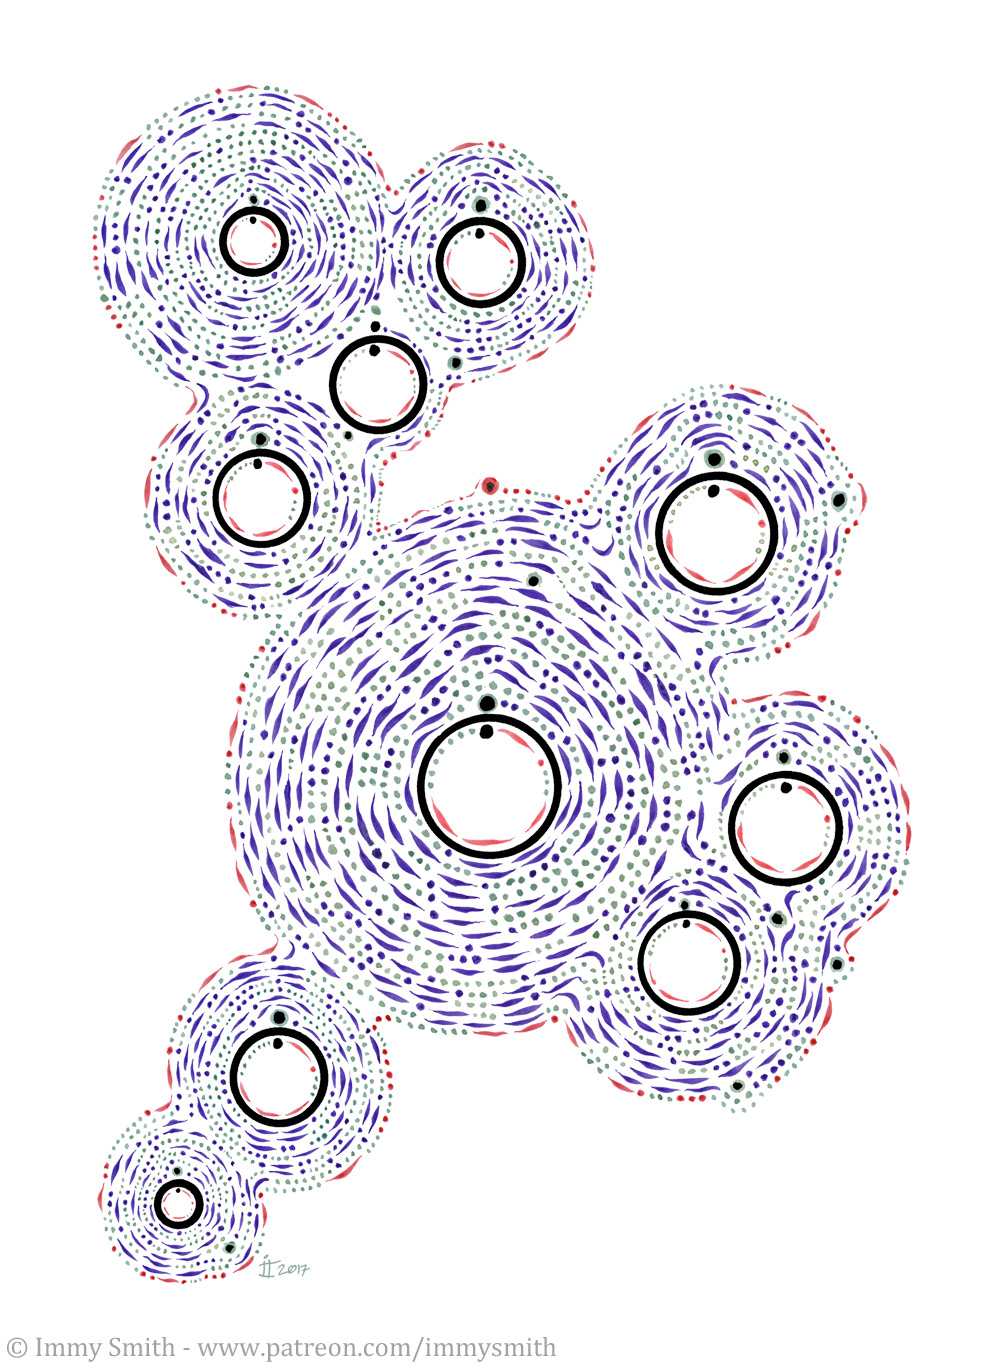 an irregularly shaped pattern on a white background, made of dots and dashes in shades of red, aquamarine and dark purple, spiralling outwards from black circles, with further dots and dashes inside them